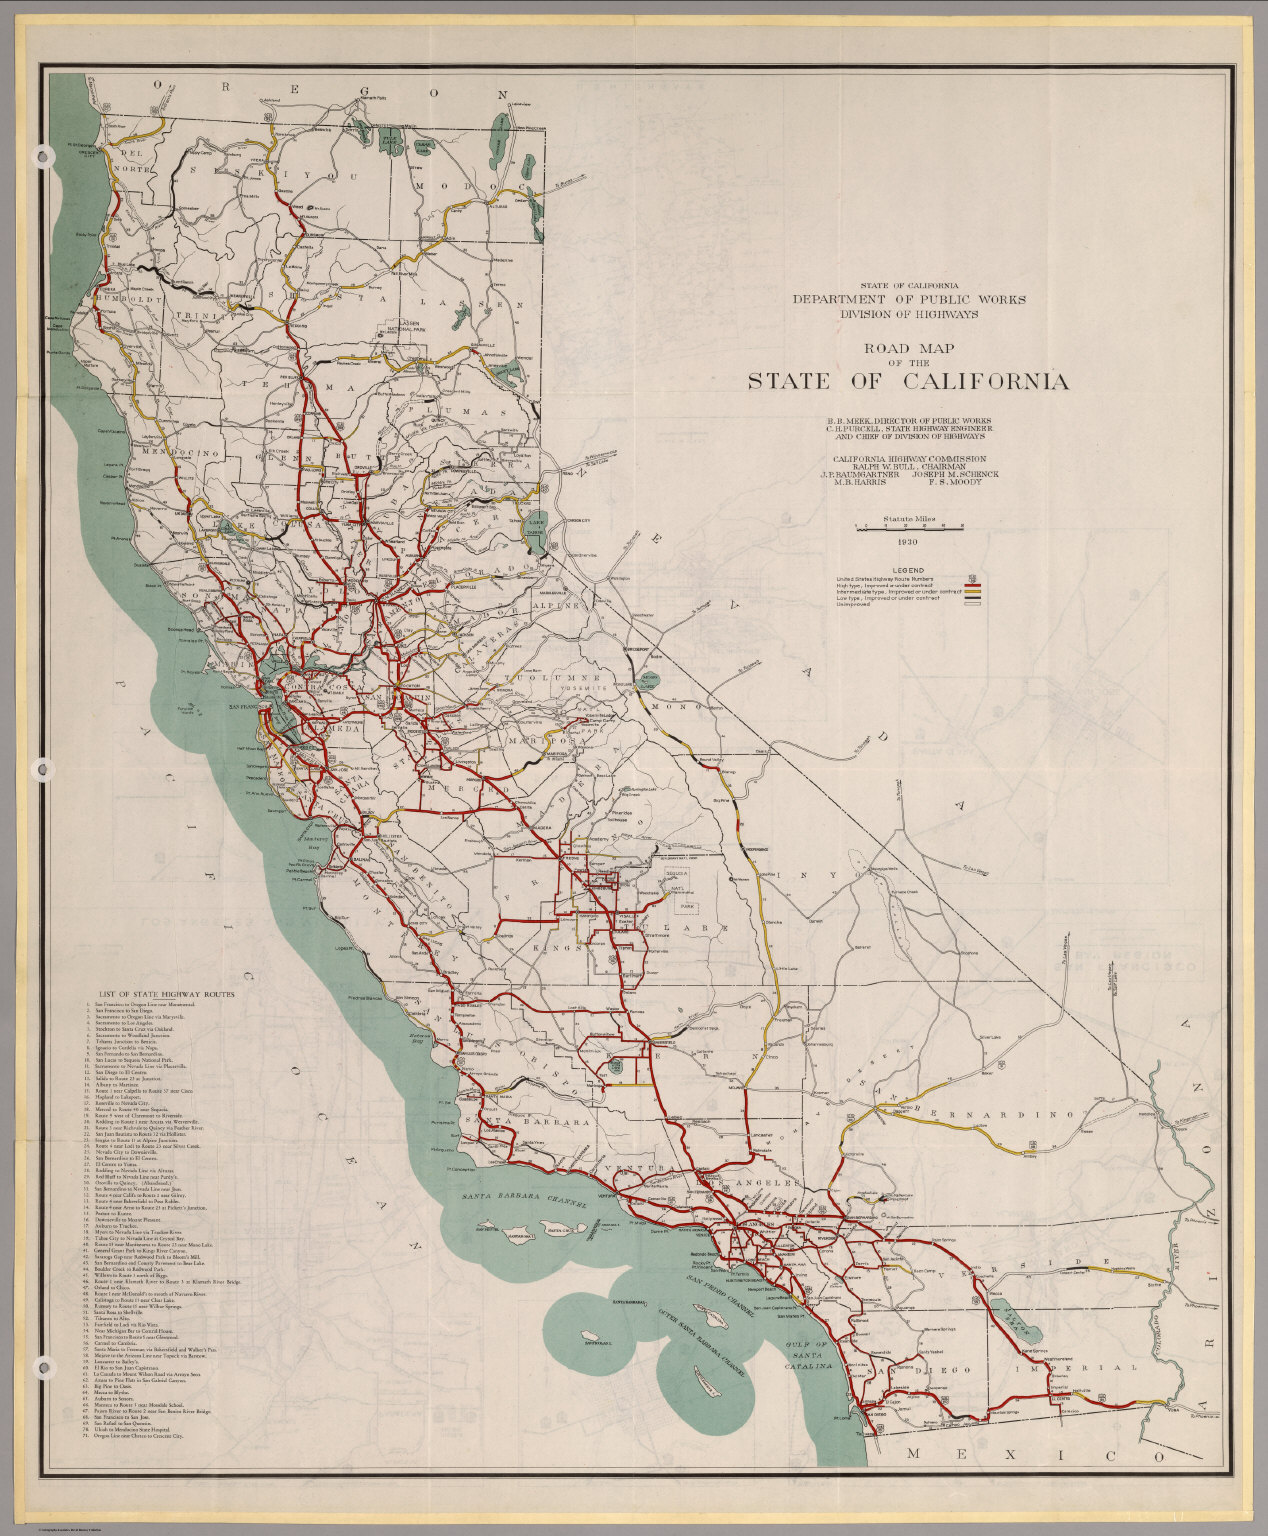 Road Map Of The State Of California David Rumsey - California road map